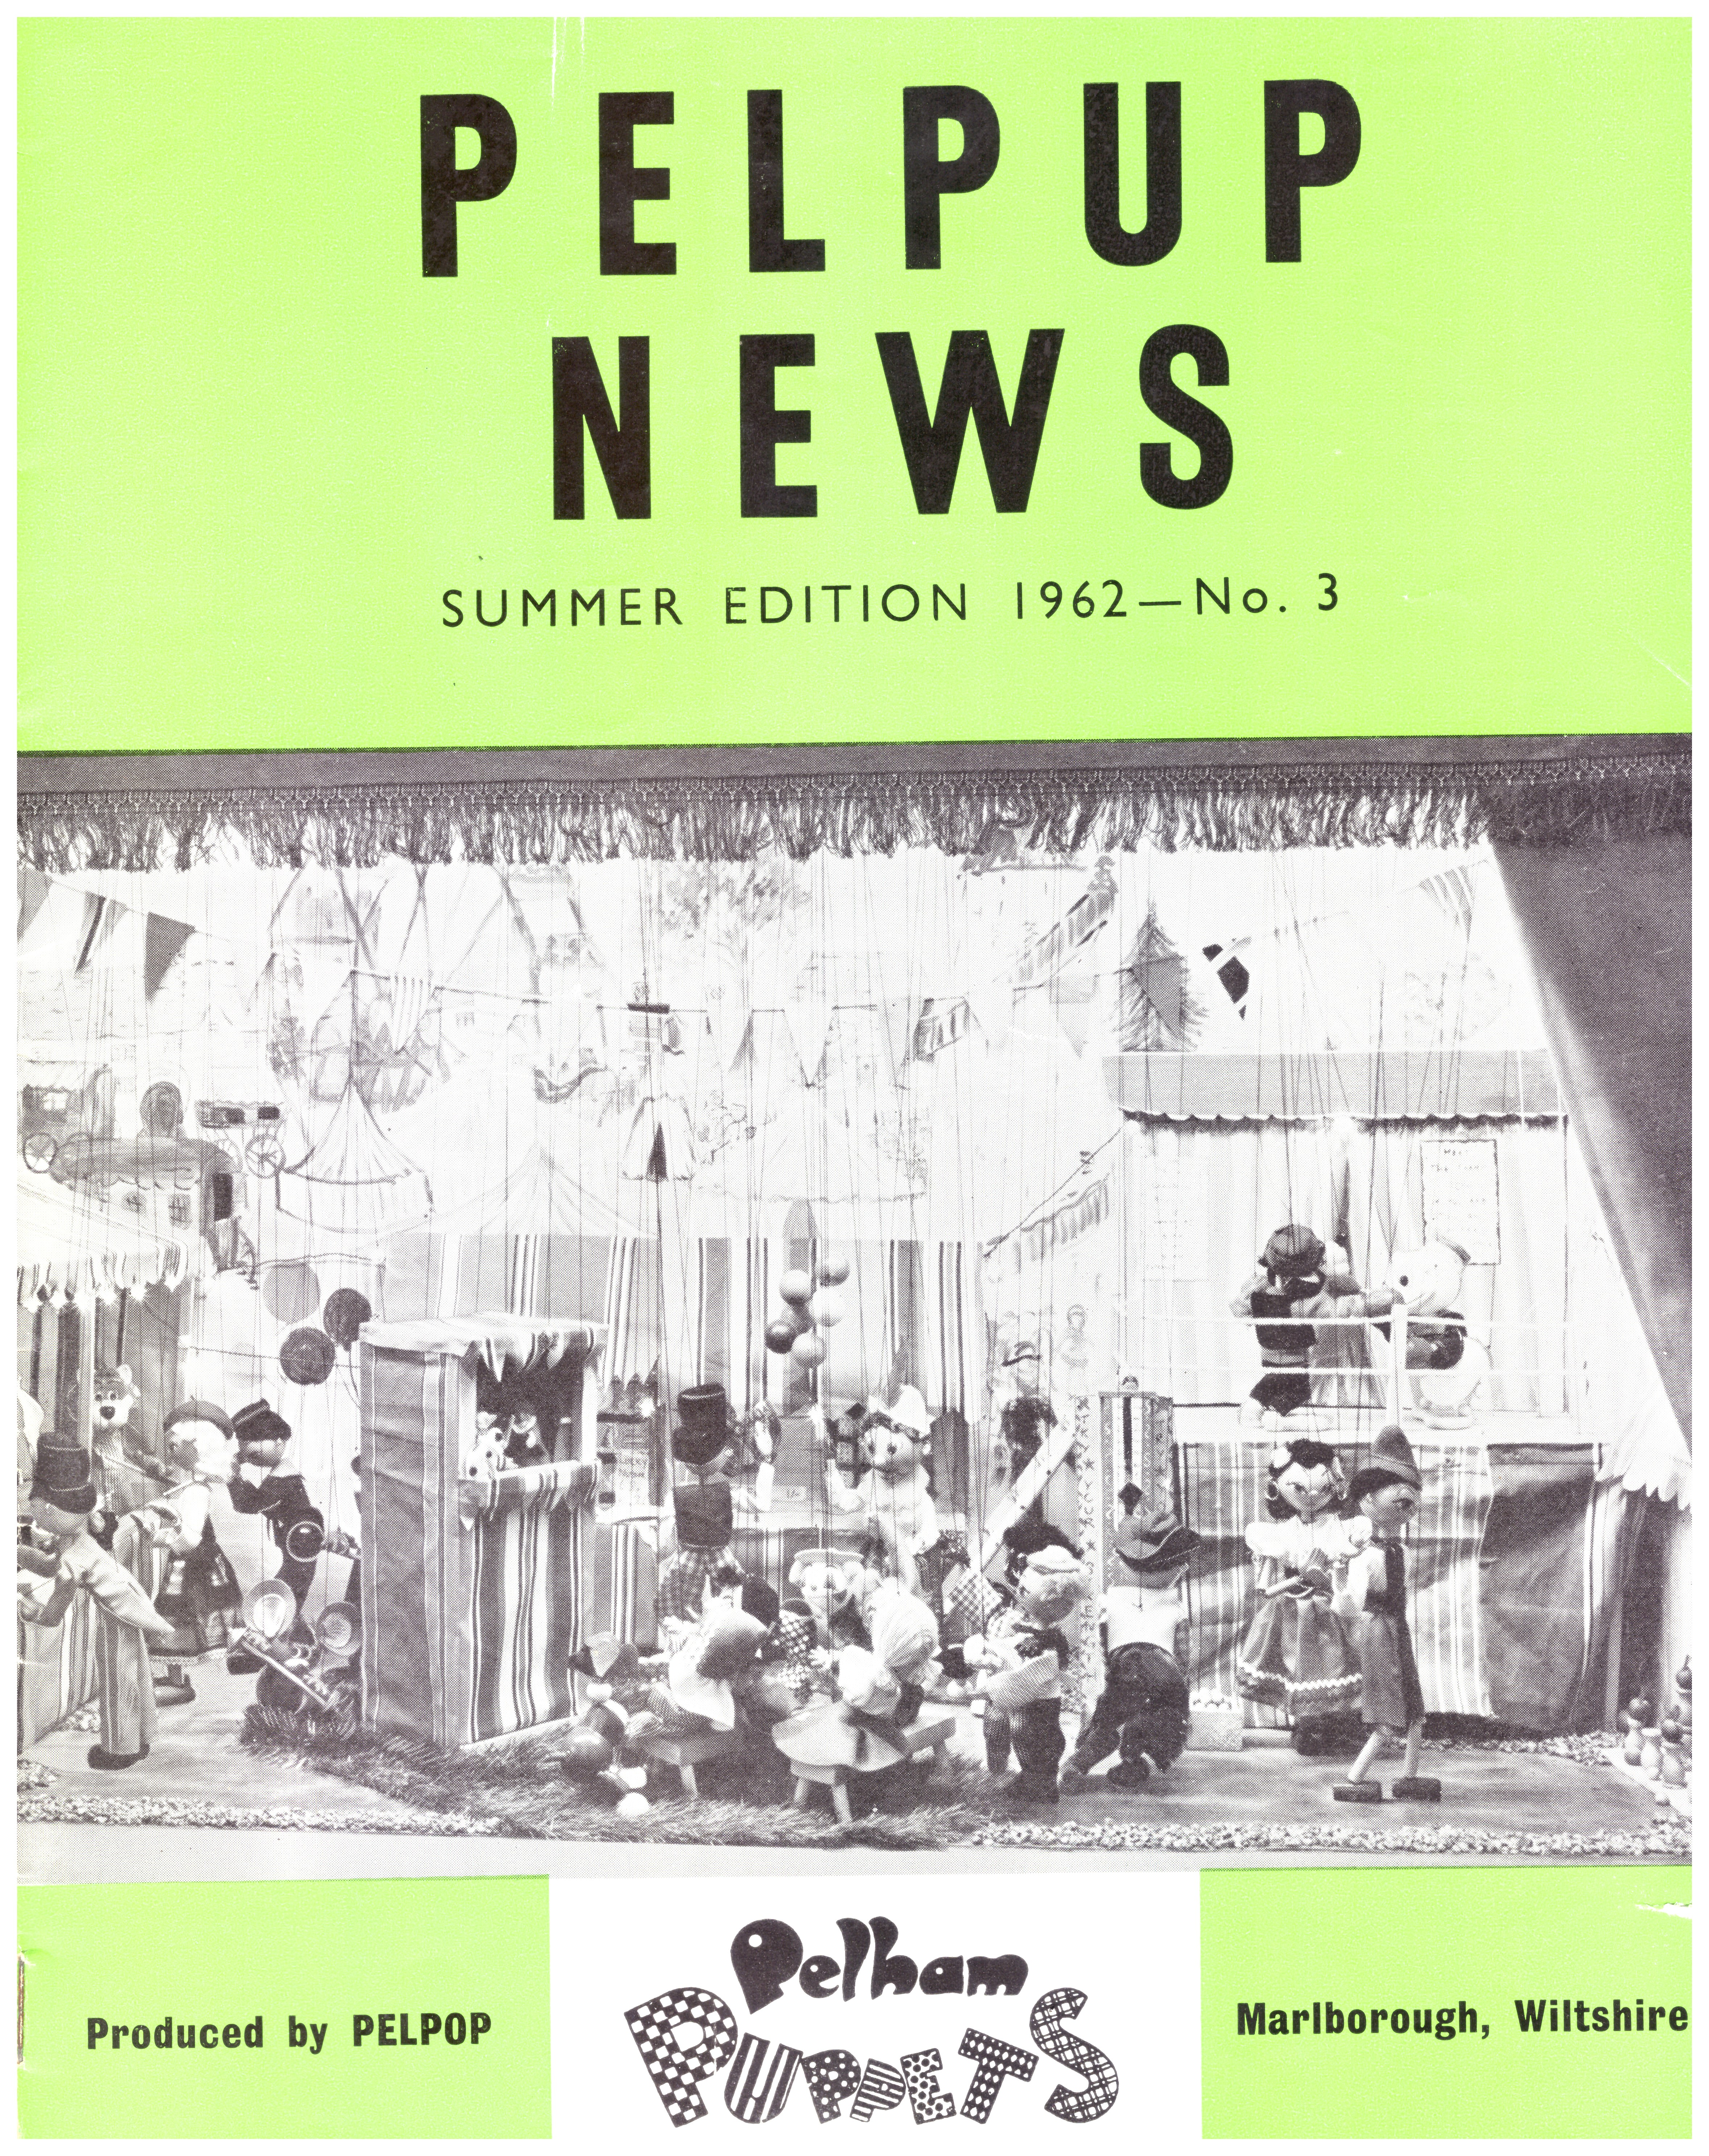 Summer Edition 1962 - Number 3